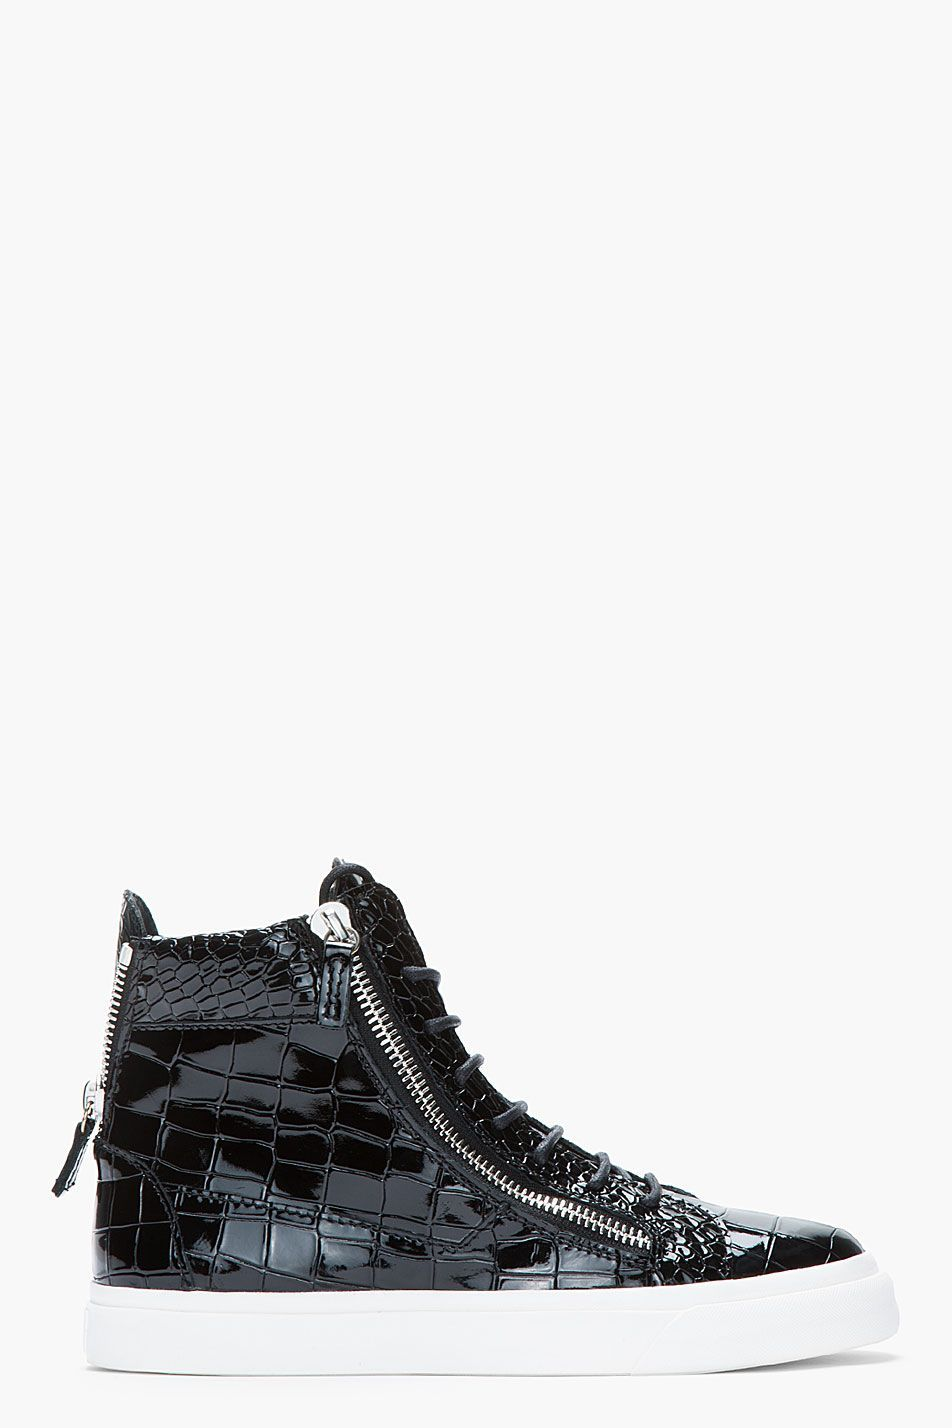 professional sale big discount good Giuseppe Zanotti Black Patent Leather Croc-embossed London ...